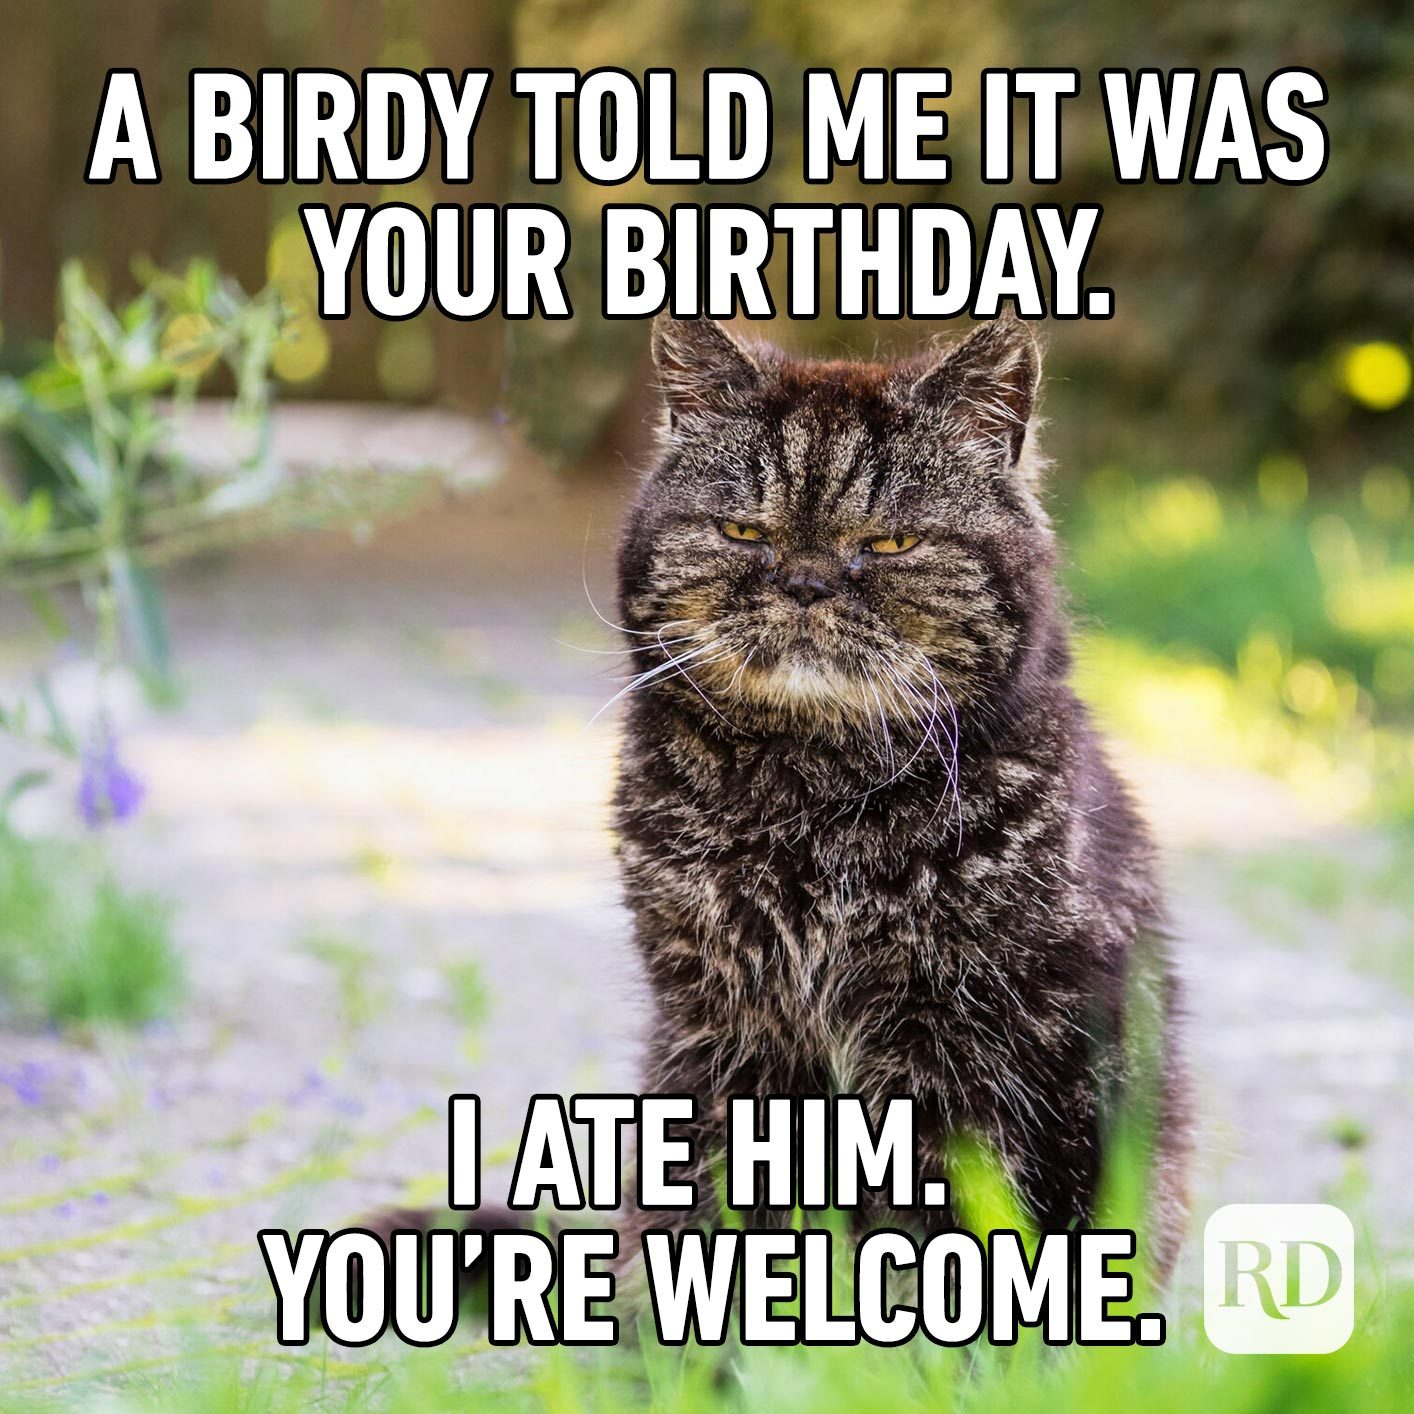 A birdy told me it was your birthday. I ate him. You're welcome.